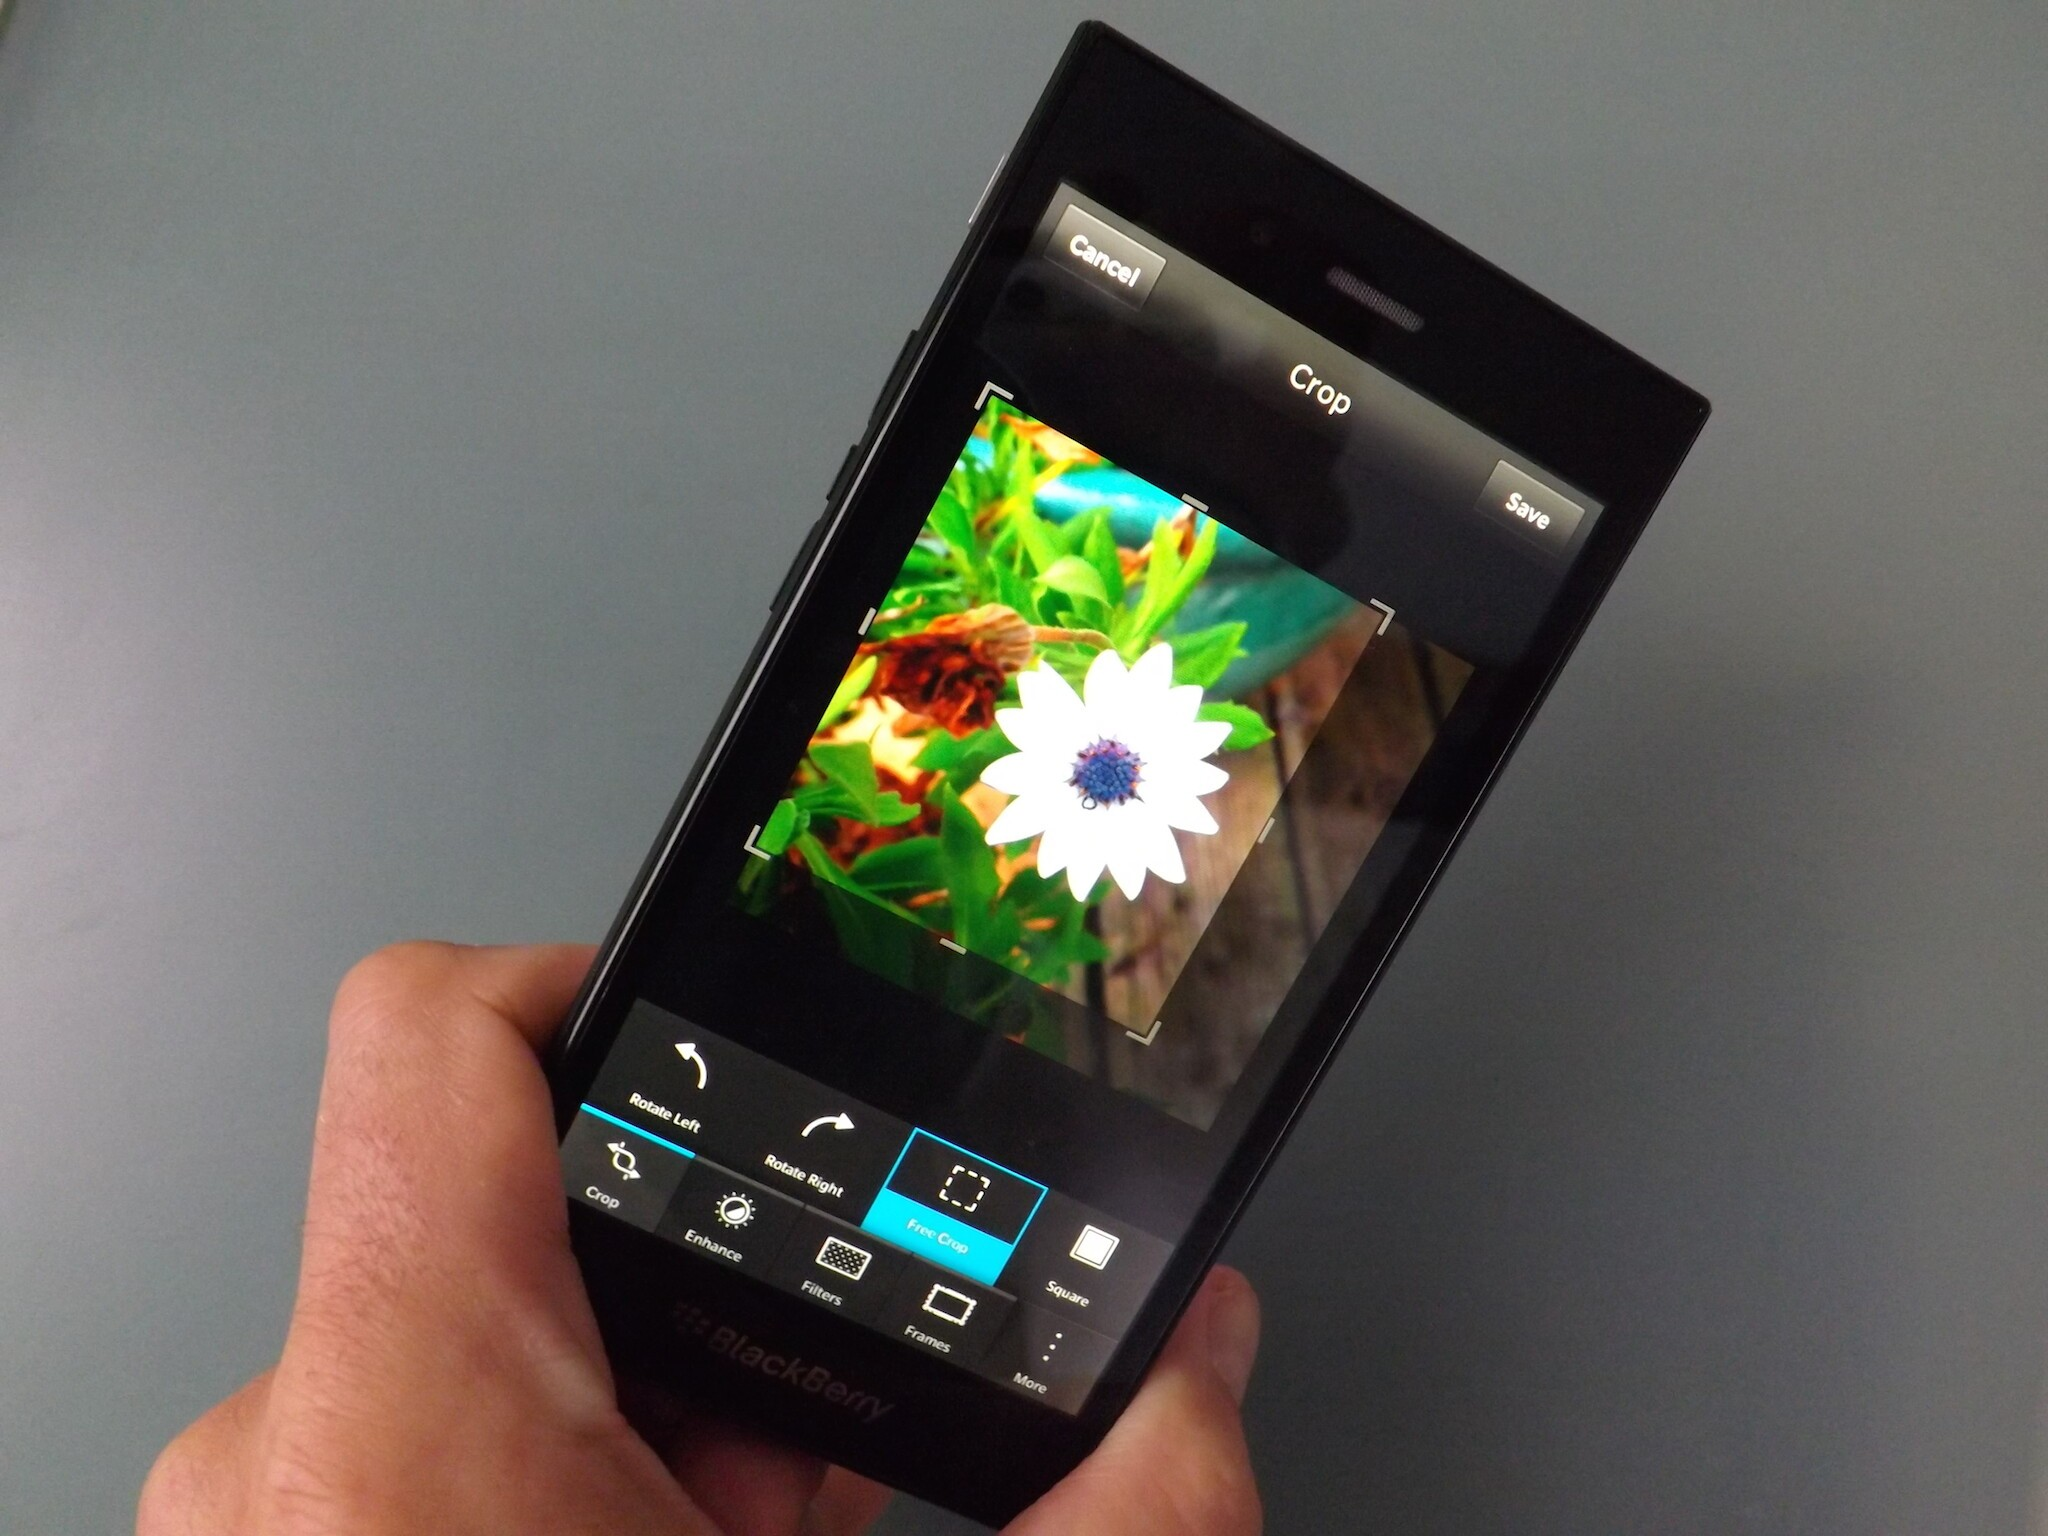 How to edit photos on the BlackBerry Z3